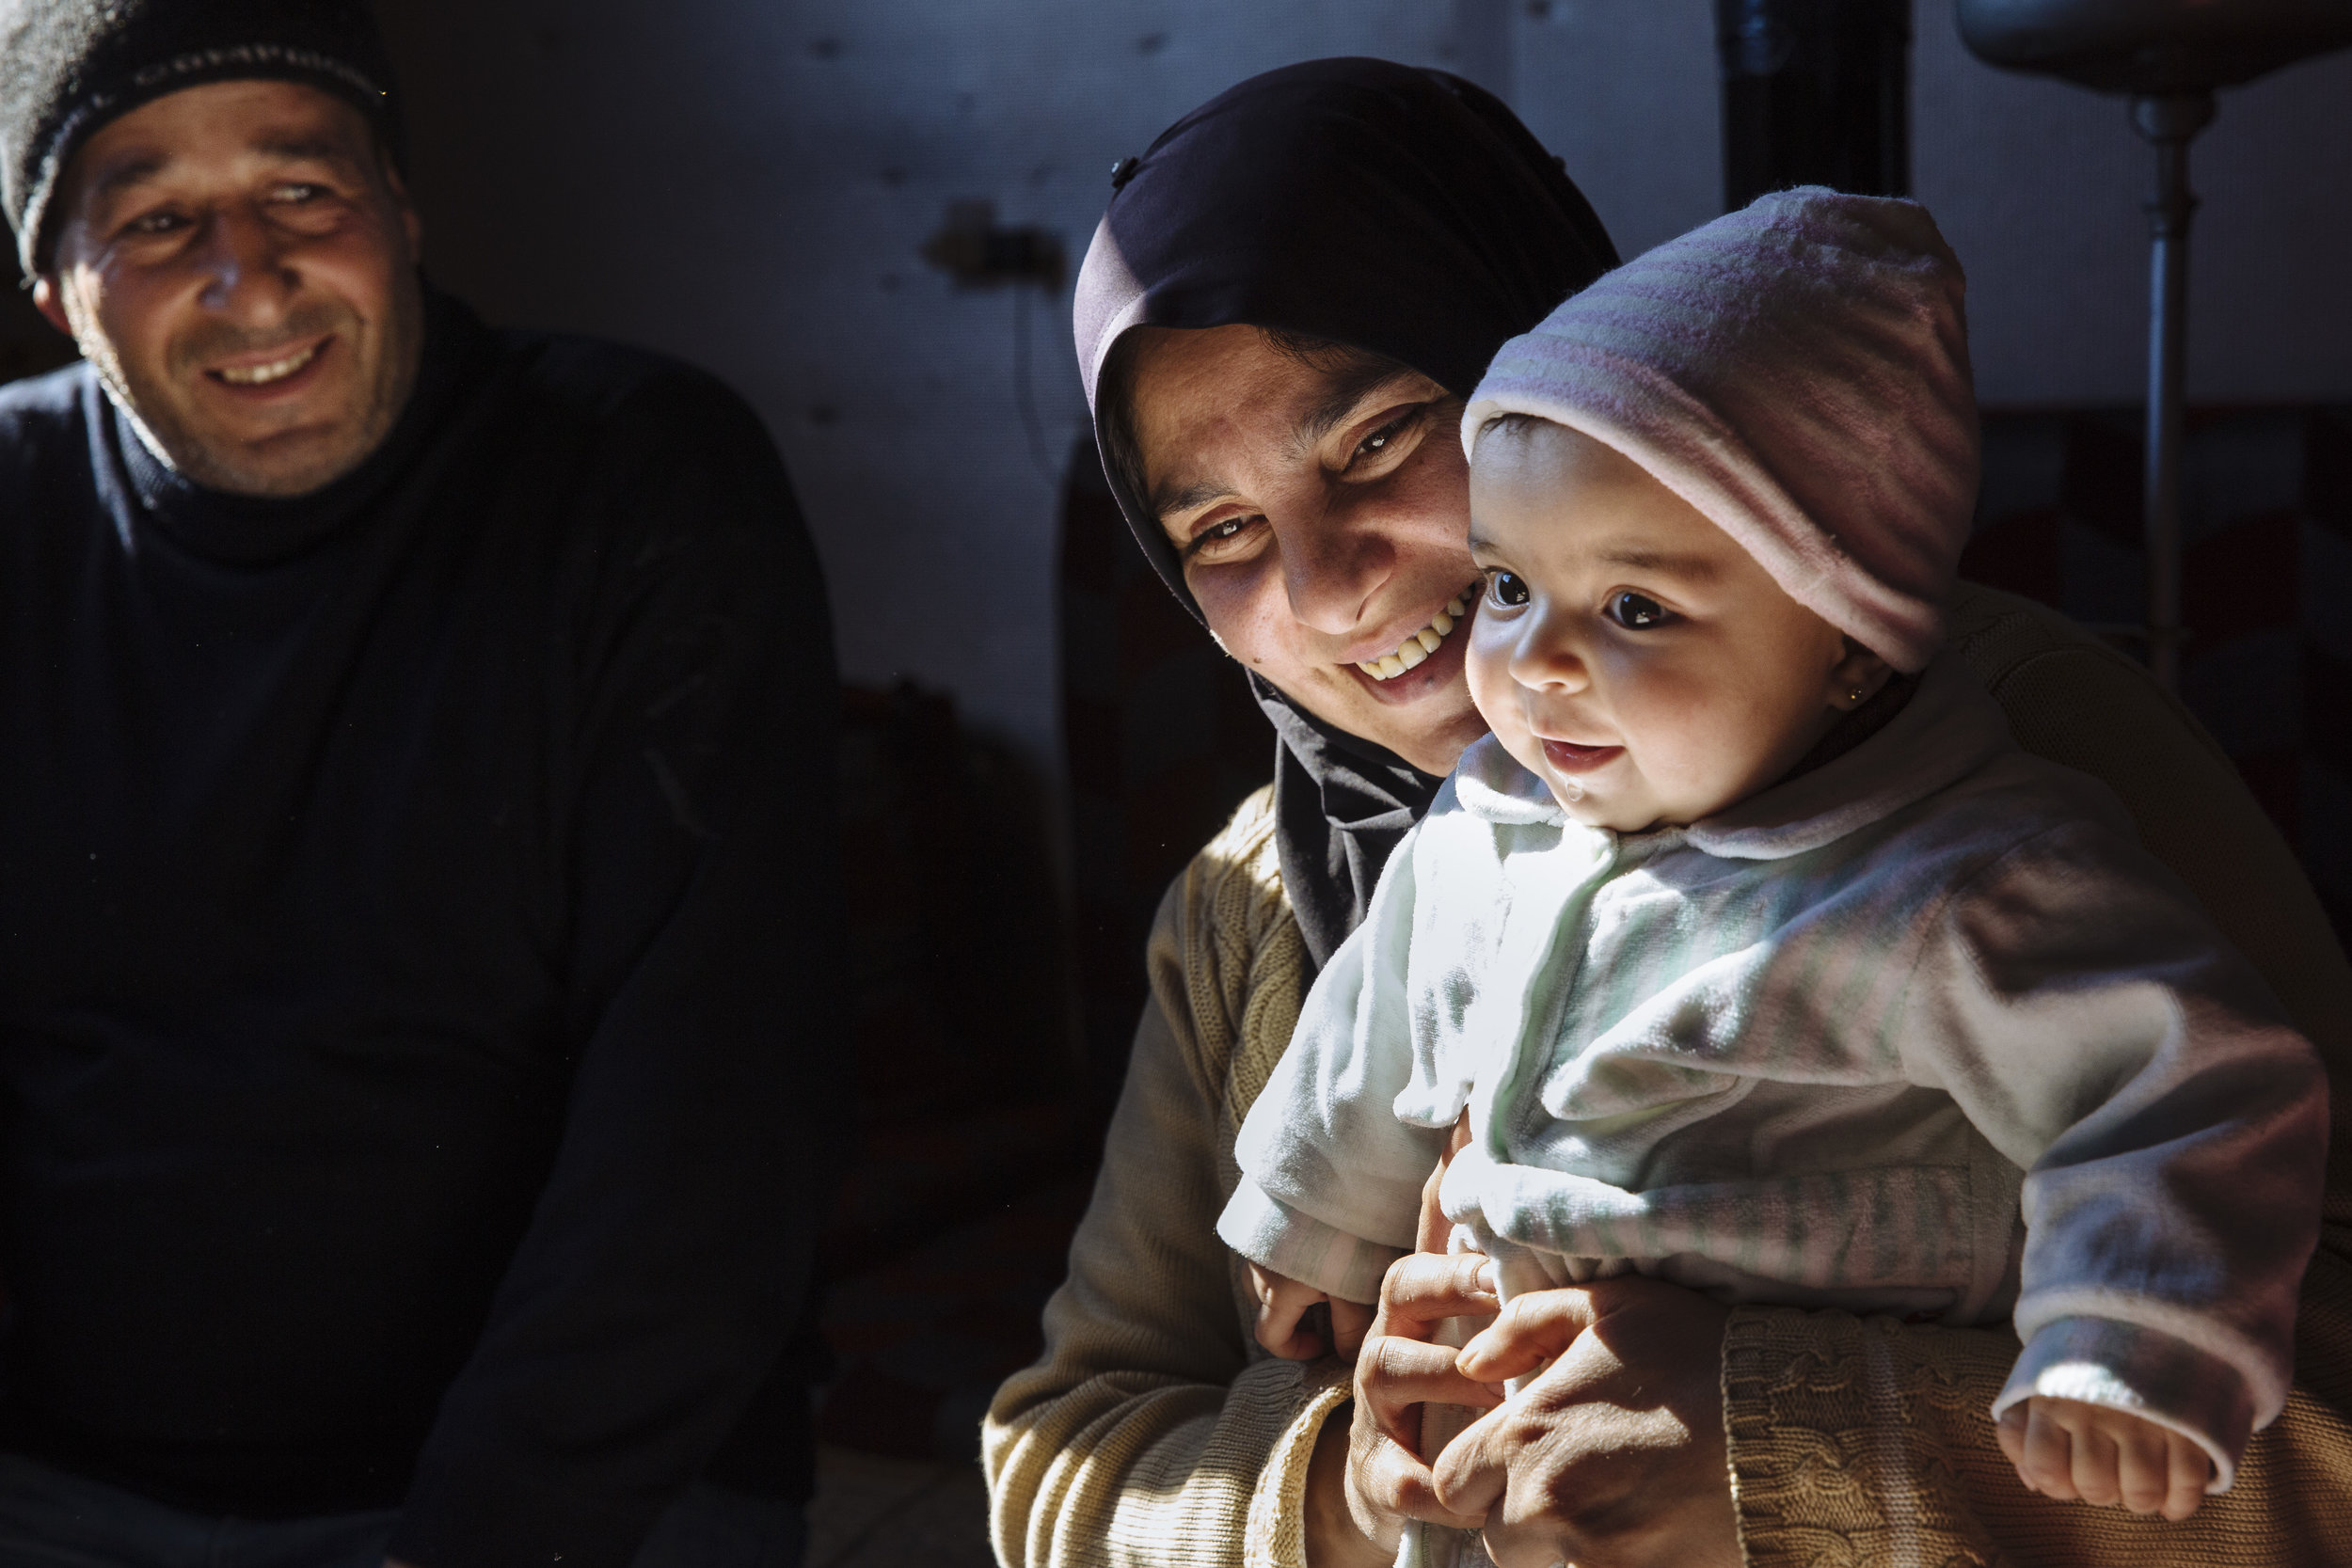 Syrian refugee Samira, 38, holds her six-month-old niece Mona alongside her husband Khaled, 45, a Palestinian refugee displaced from Syria, on the floor of the substandard apartment they share with their family, in Barelias, Bekaa Valley, Lebanon.